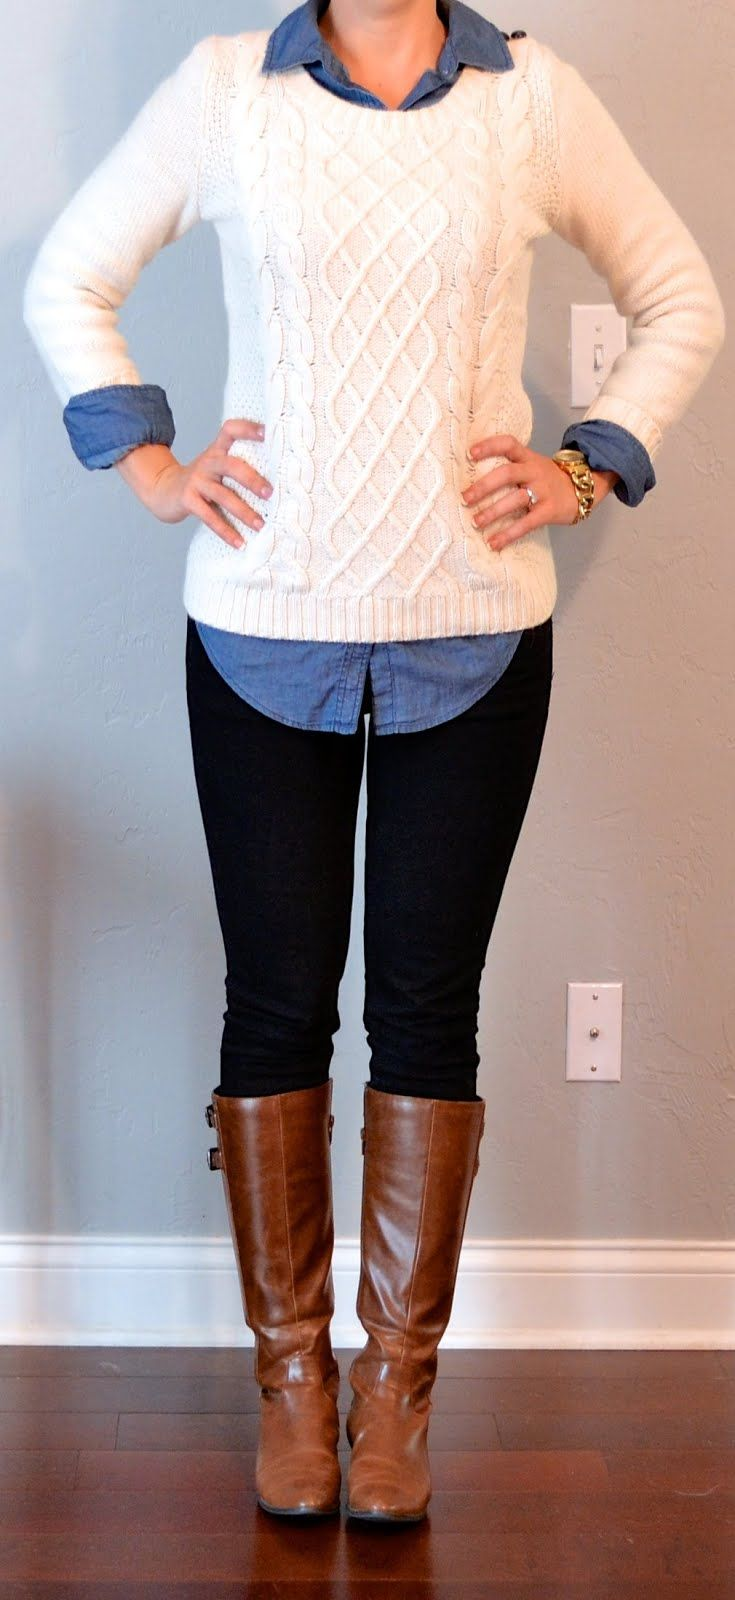 fd58907b5 This is an adorable look Top: Chambray shirt - Old Navy Cream cable knit  sweater - H Bottom: Black skinny jeans - Target Shoes: Brown riding boots -  Macys ...